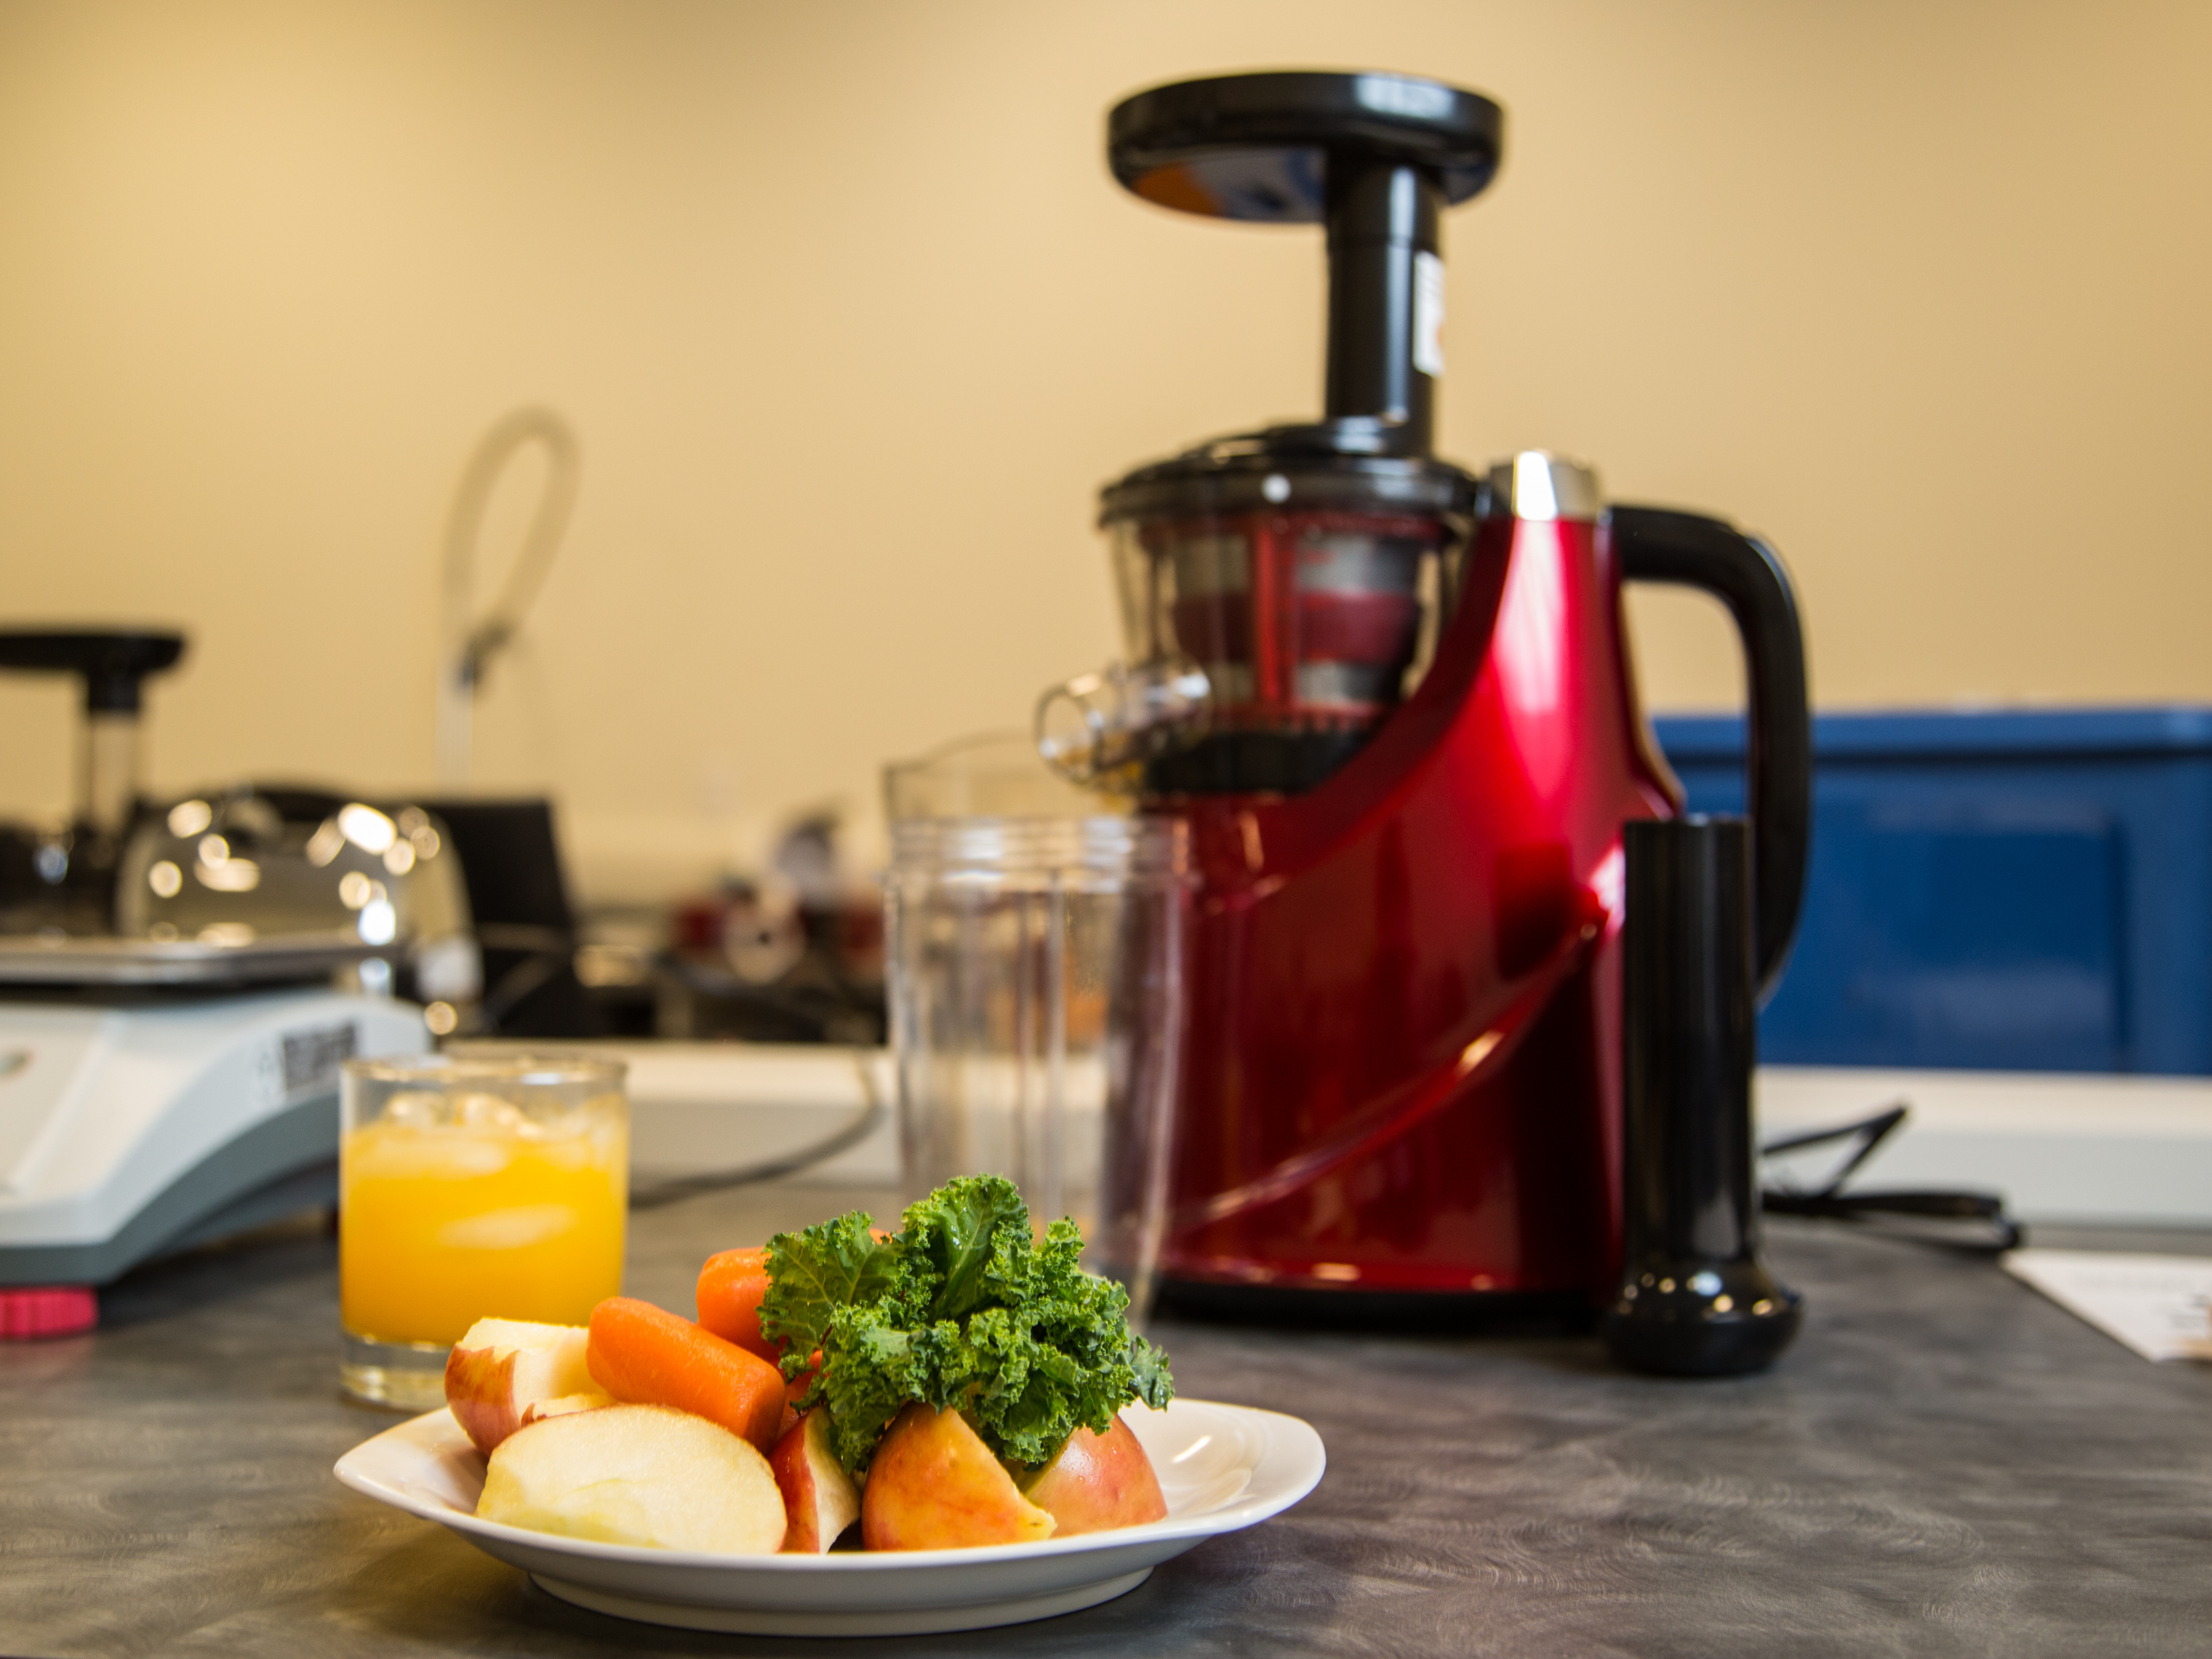 vonShef Premium Slow Masticating Juicer review - CNET